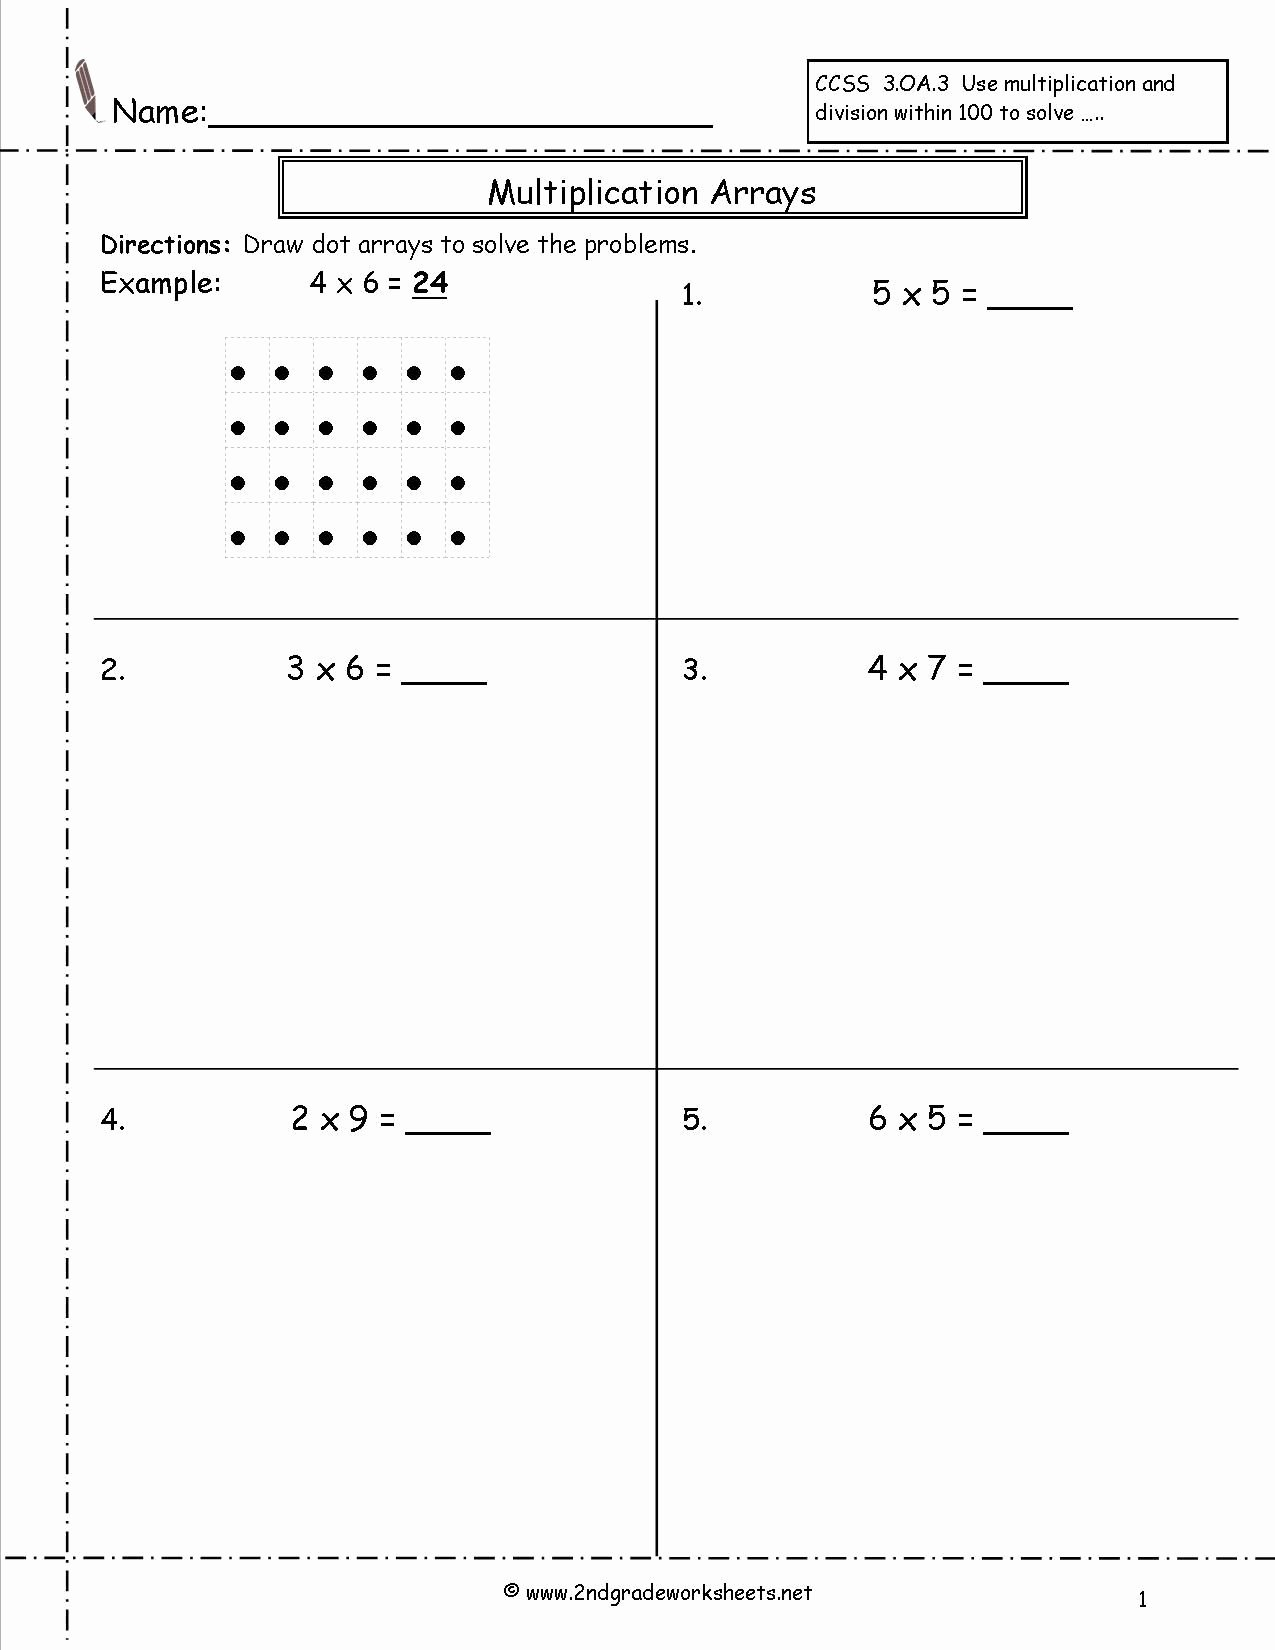 Multiplication Worksheets Third Grade top Multiply by 3 Worksheets 3rd Grade